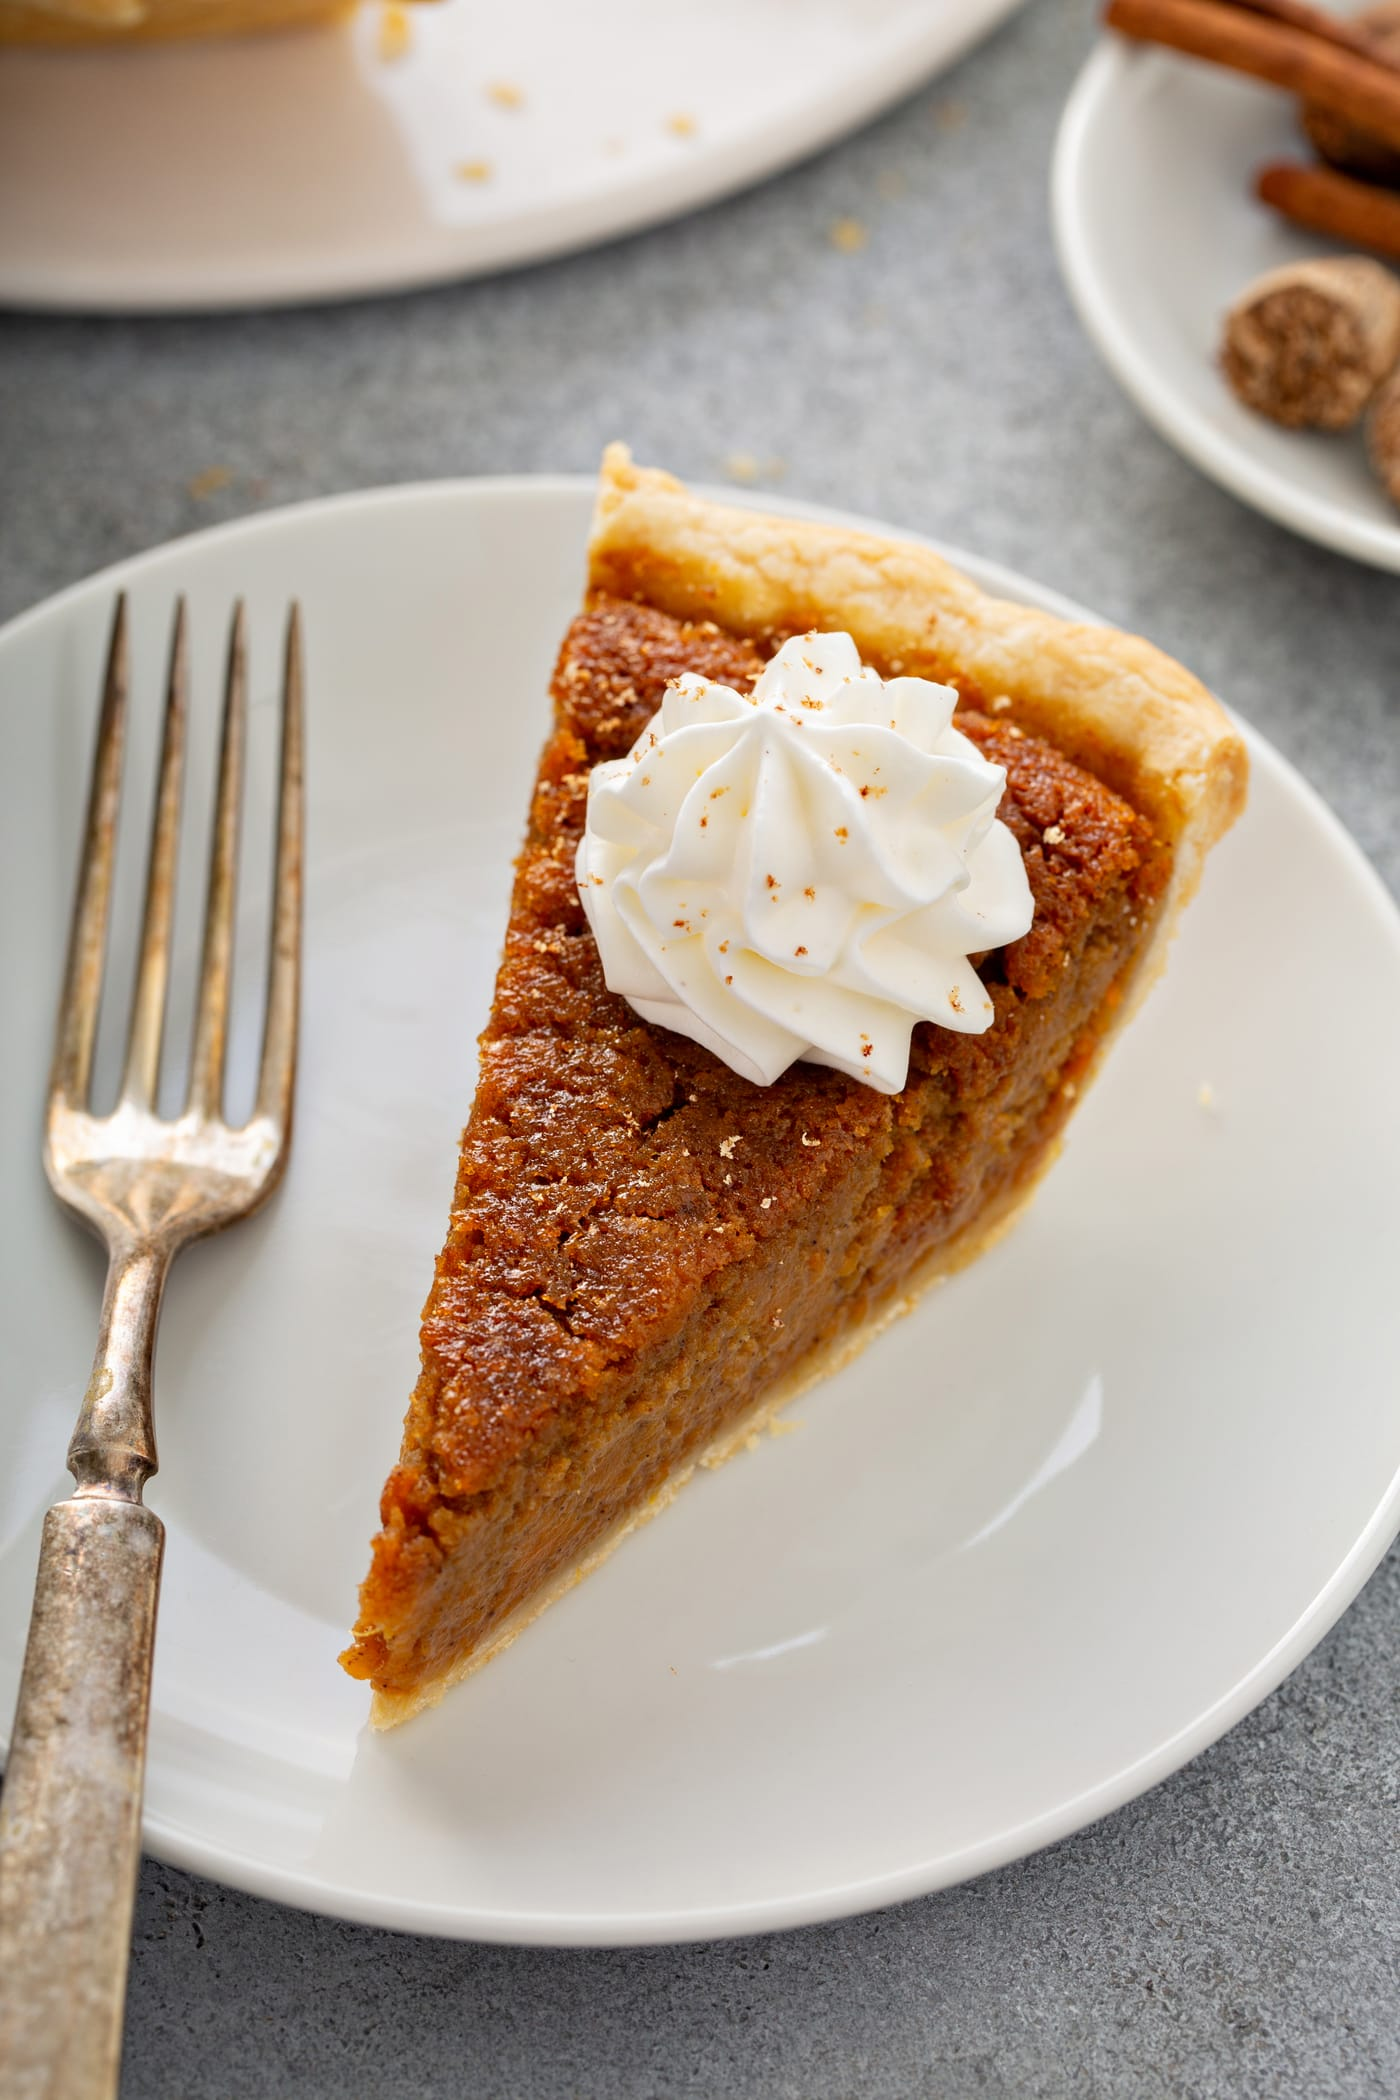 A photo of a slice of sweet potato pie sitting on a white plate with a silver fork sitting next to it.